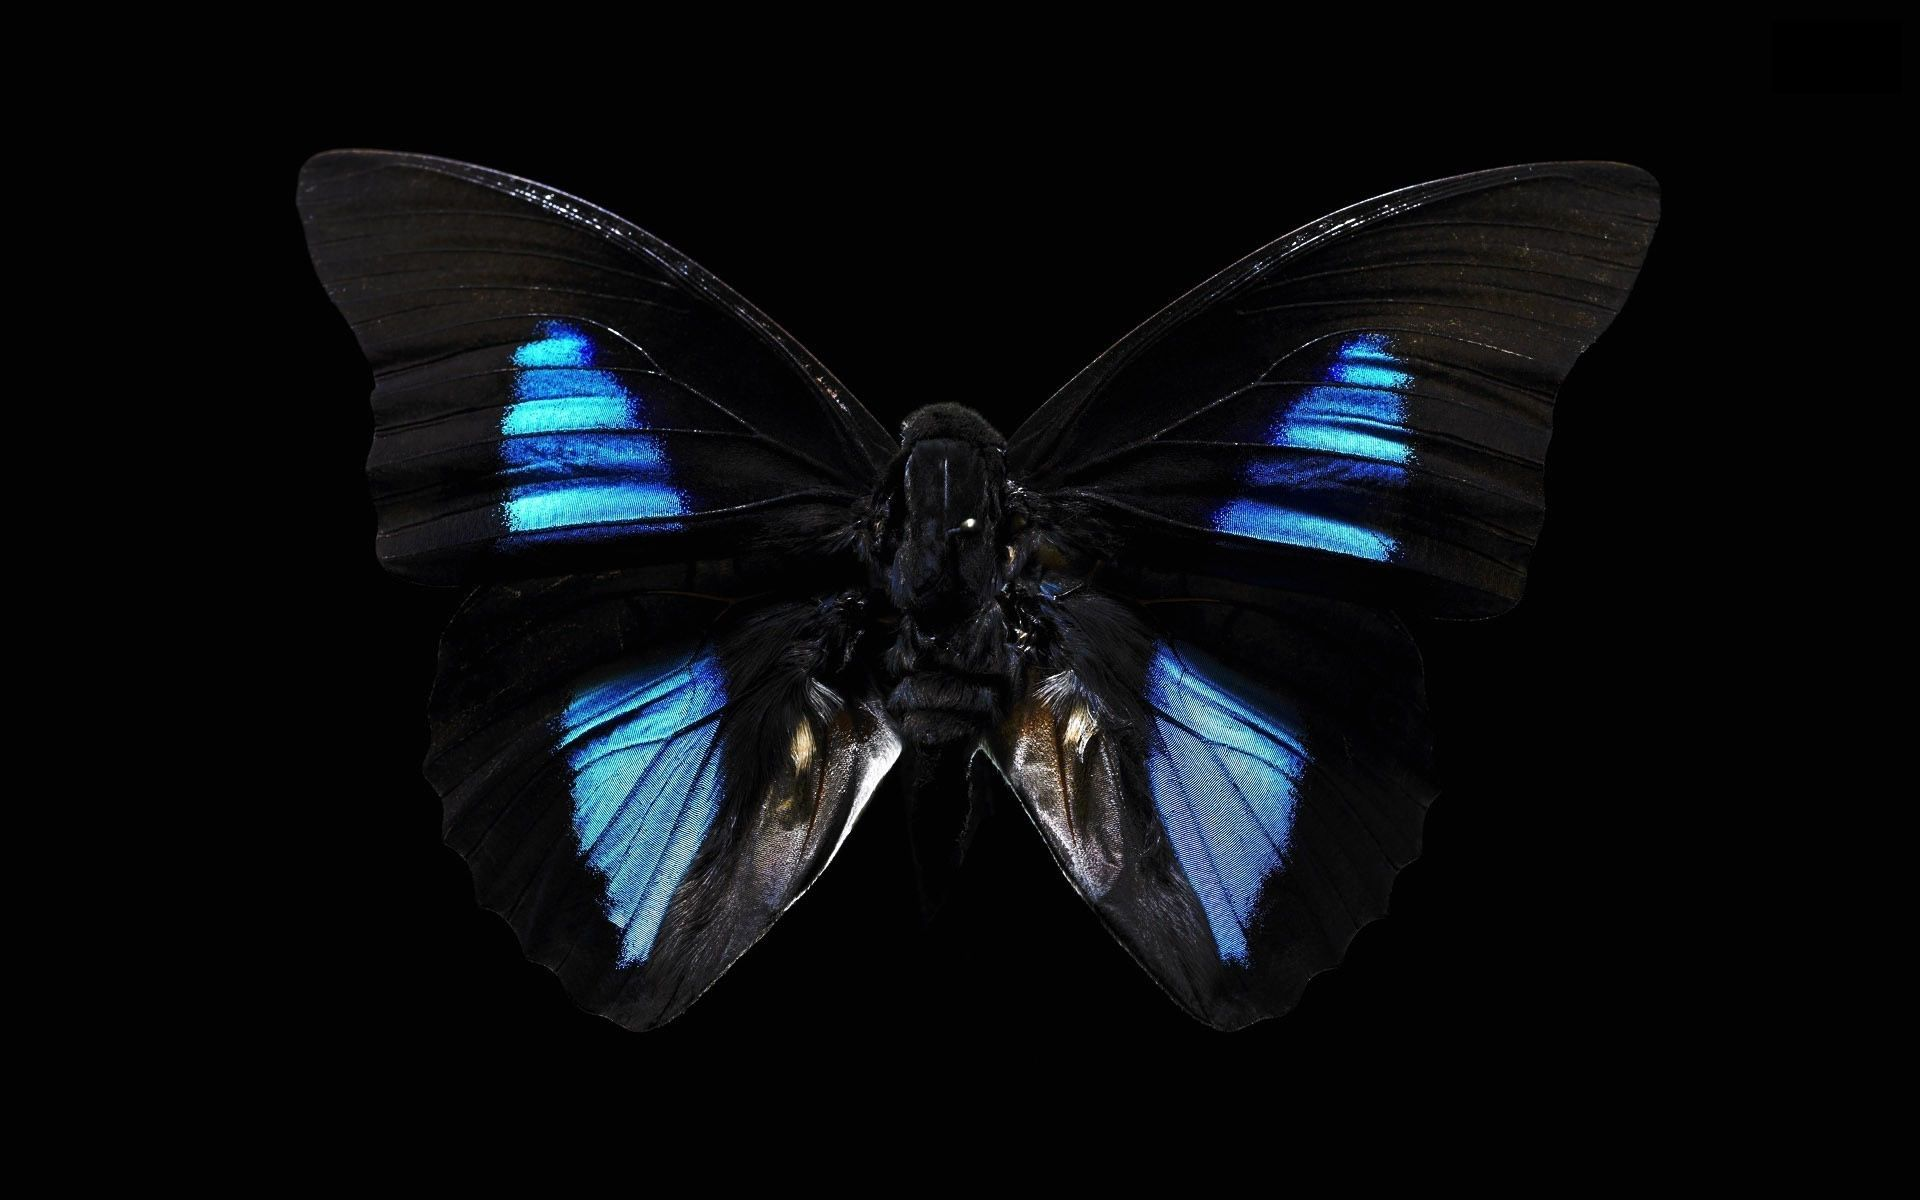 New Butterfly Pictures Black Butterfly Butterflies Hd Wallpapers Animal Wallpapers 253 Black Butterfly Black And Blue Wallpaper Most Beautiful Butterfly